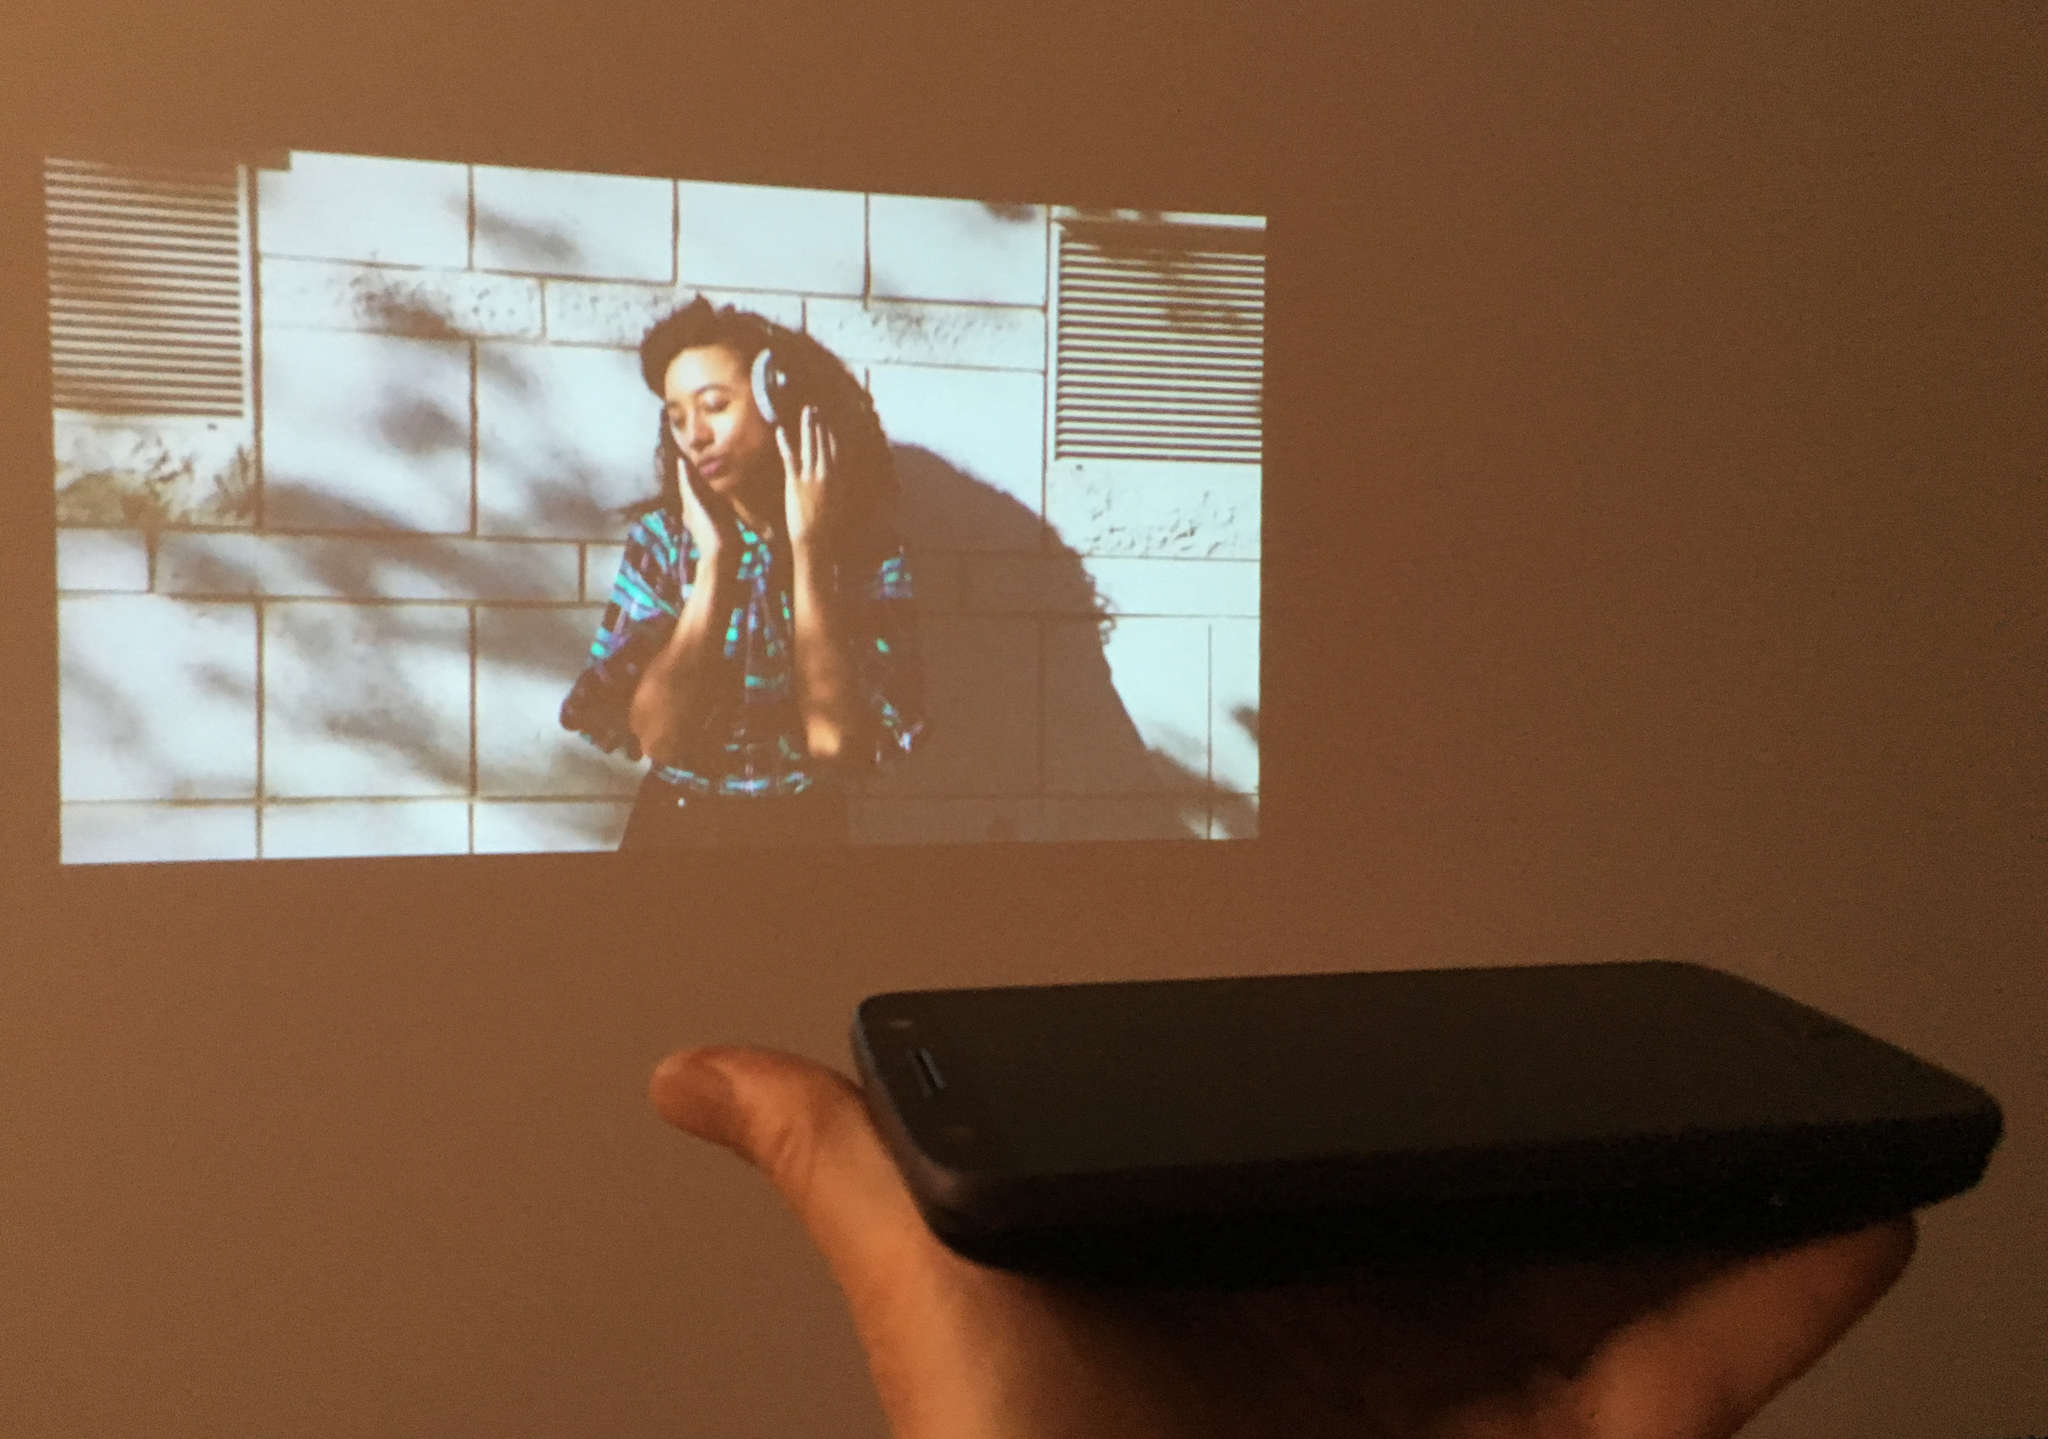 A Motorola Z Force Droid smartphone demonstrates the Insta-Share Projector mod.